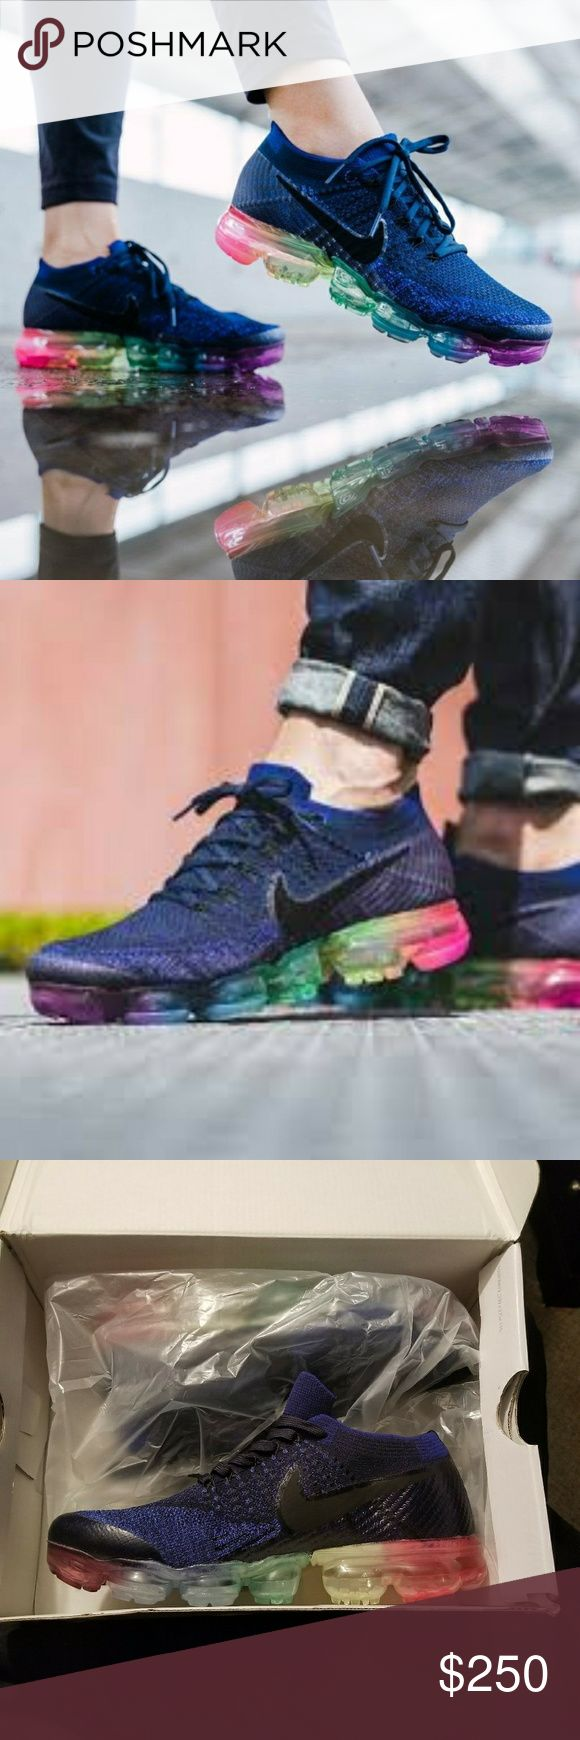 """Nike Vapormax """"Be True"""" Be True Blue Nike Vapormax with a Rainbow colors along the Air Pocket Soles. These are NEW IN BOX. I ORDERED ONLINE AND THEY WERE TO BIG! So they have Never been Worn! They are unisex US Mens Size 7 and US Women's Size 9. Brand New in Box and Never Worn they are in Excellent condition NWT AND NWB!!! Nike Shoes Sneakers"""